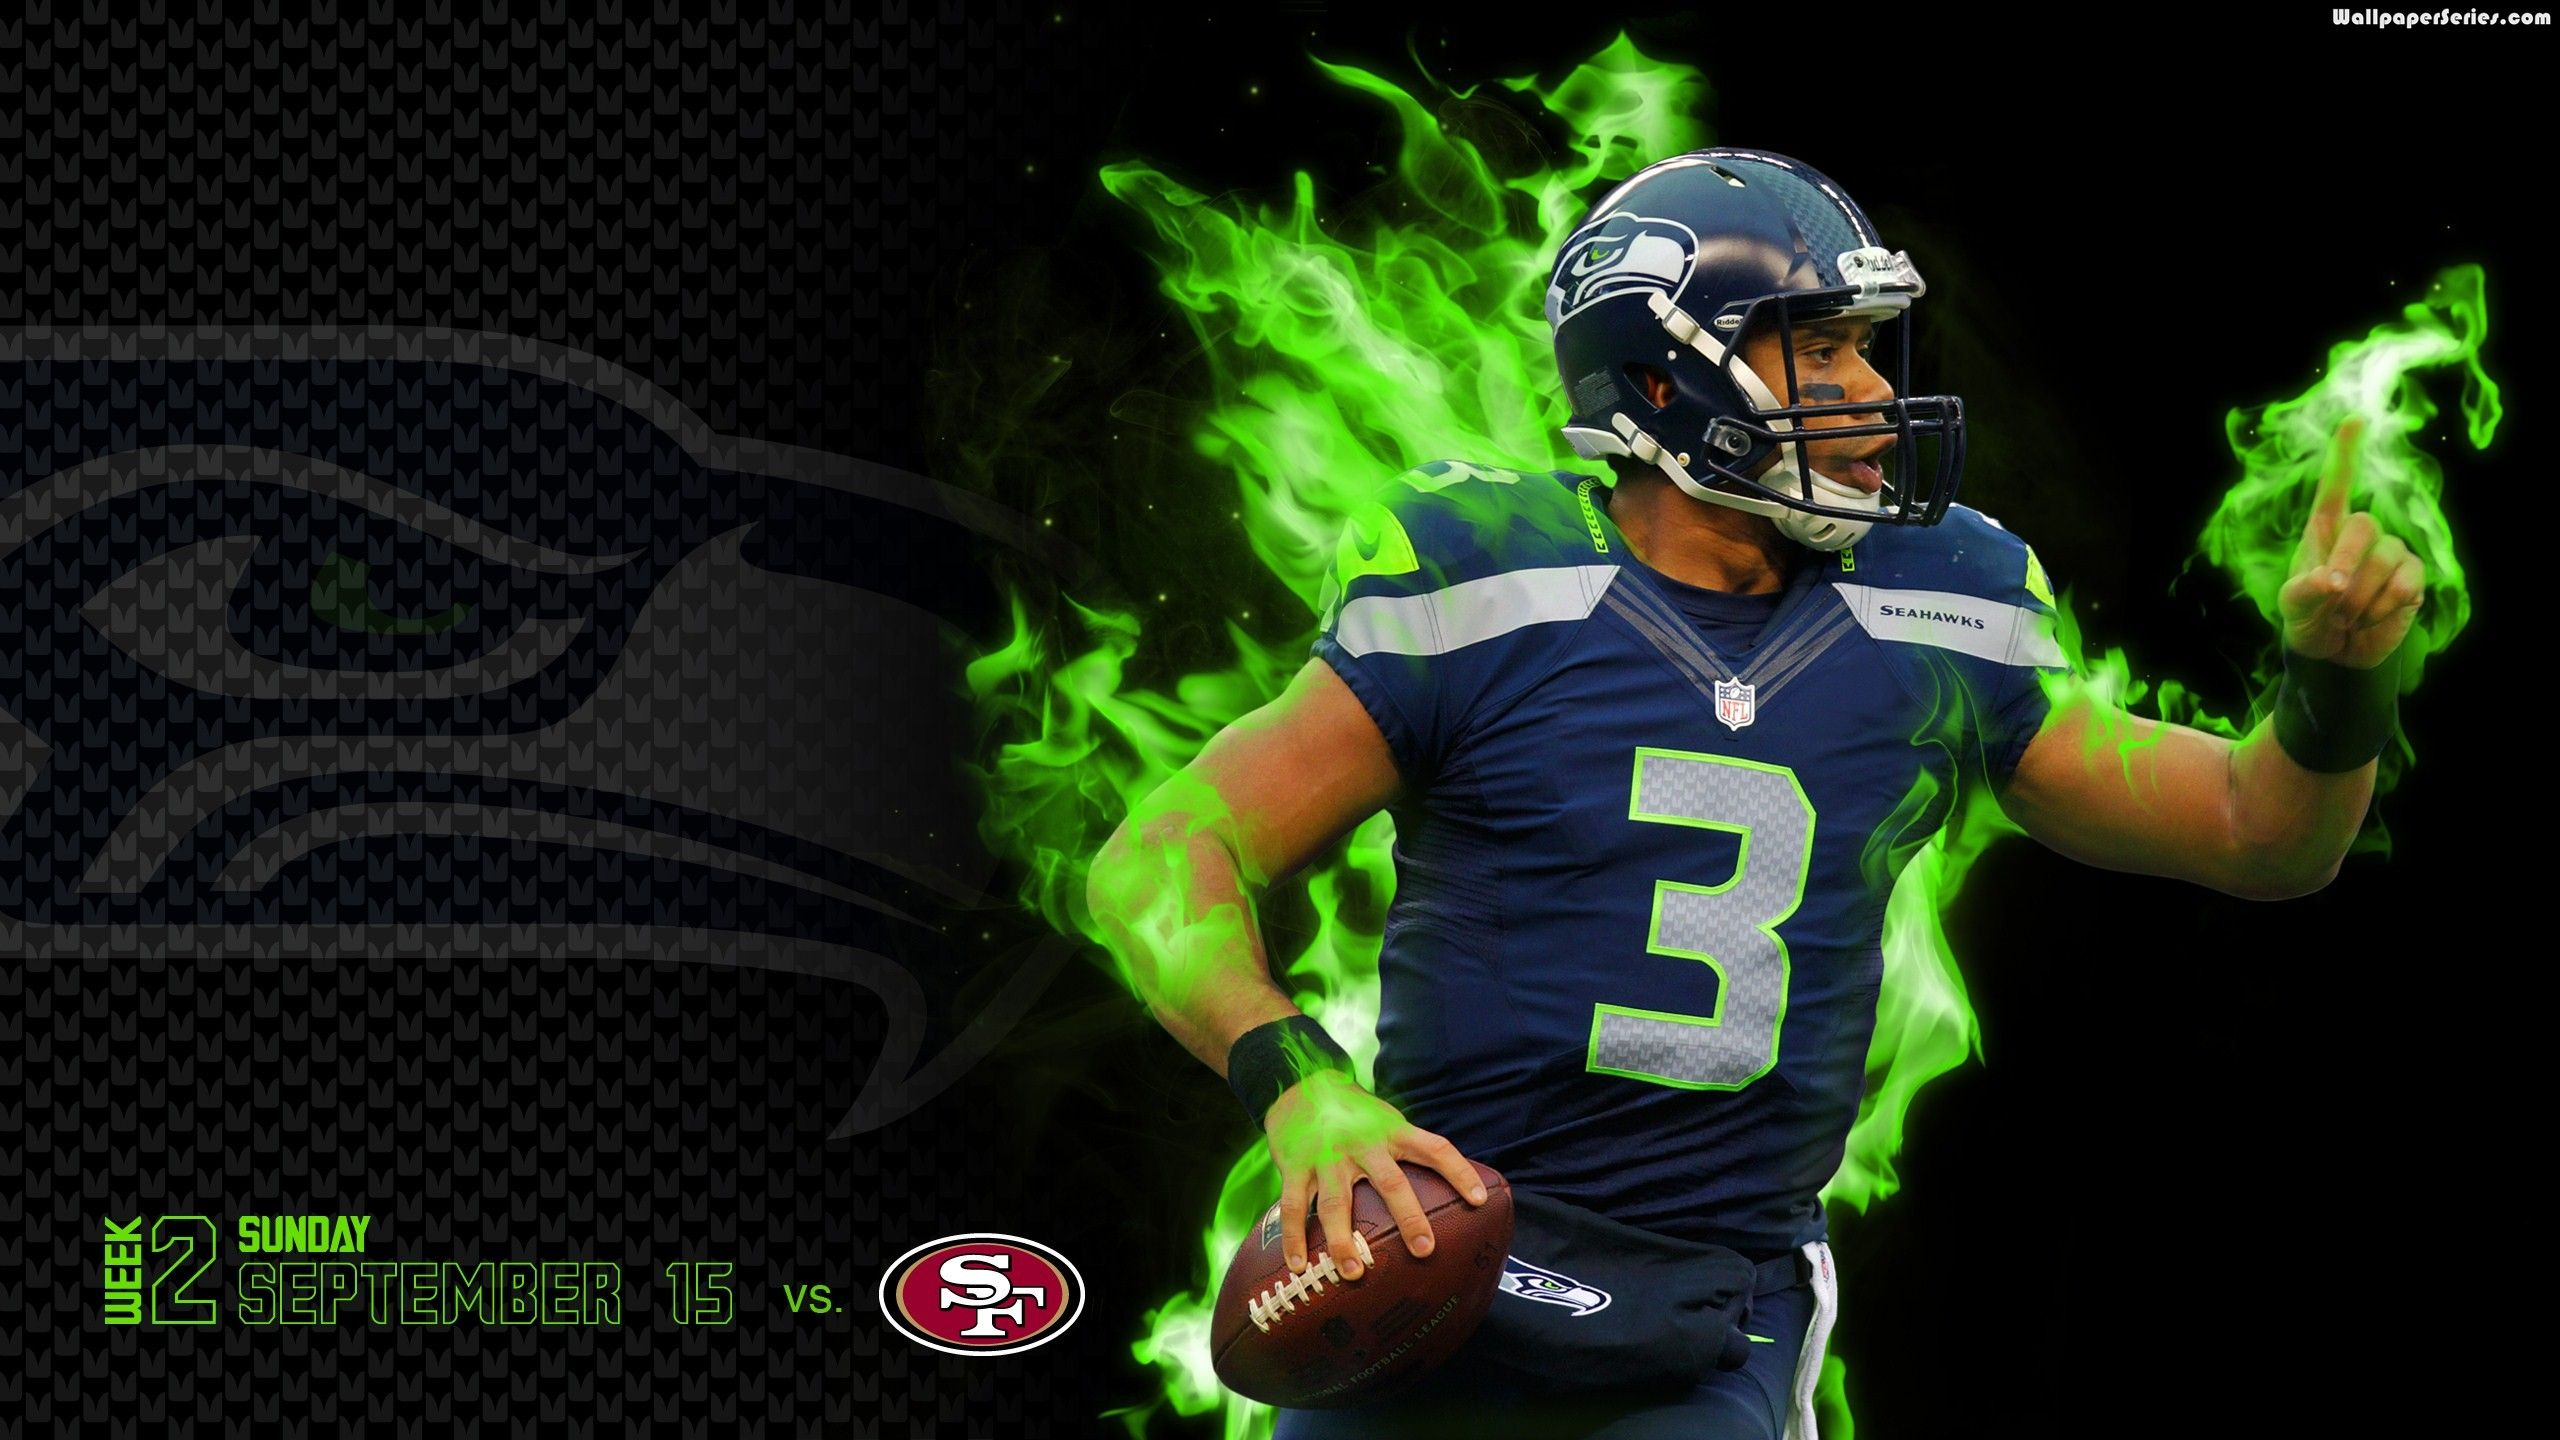 Seattle Seahawks Player Desktop Wallpaper 2560x1440